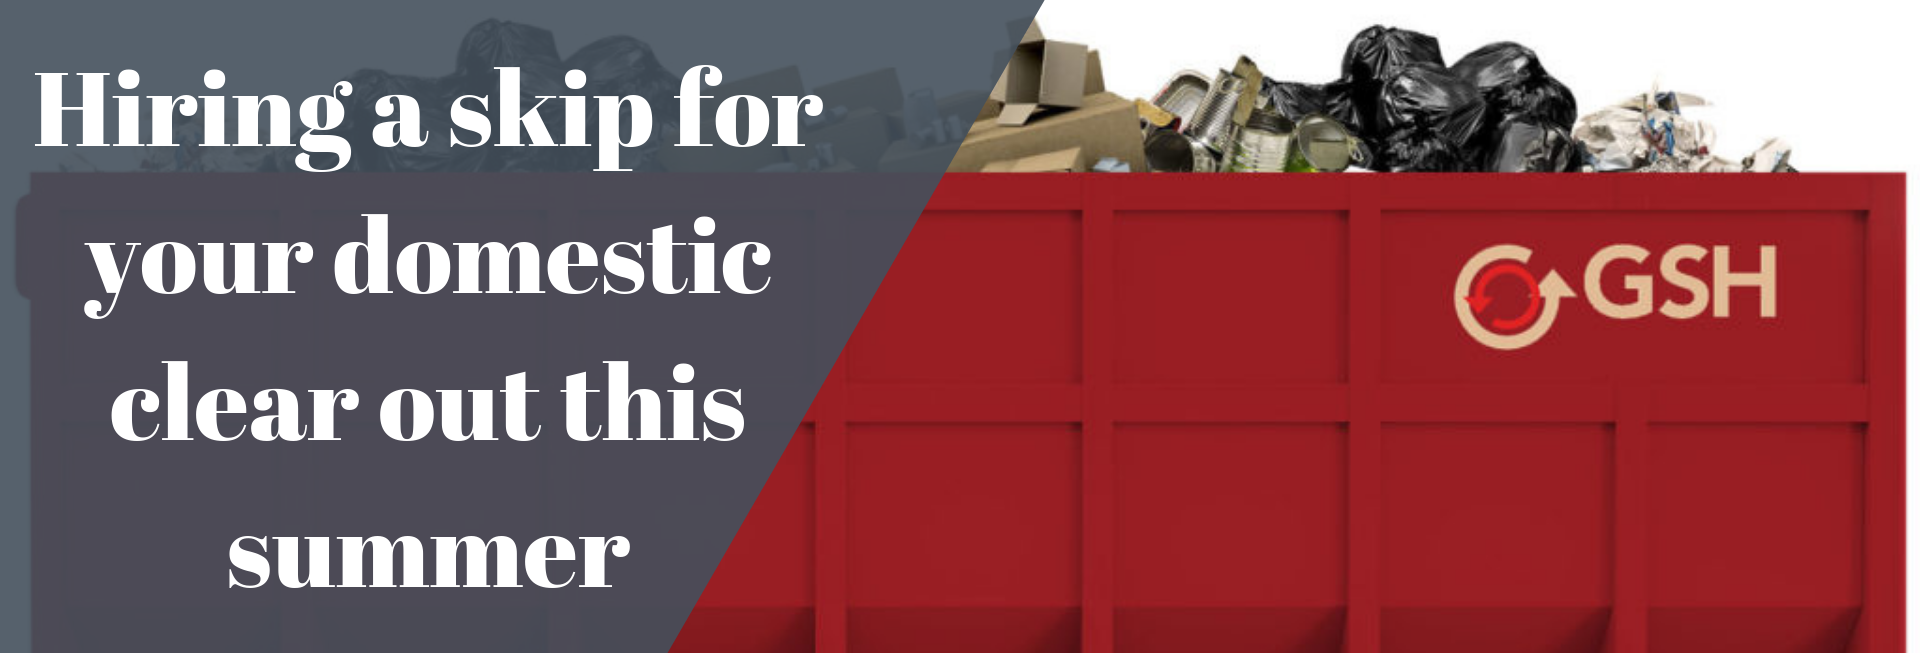 Hiring a skip for your domestic clear out this summer